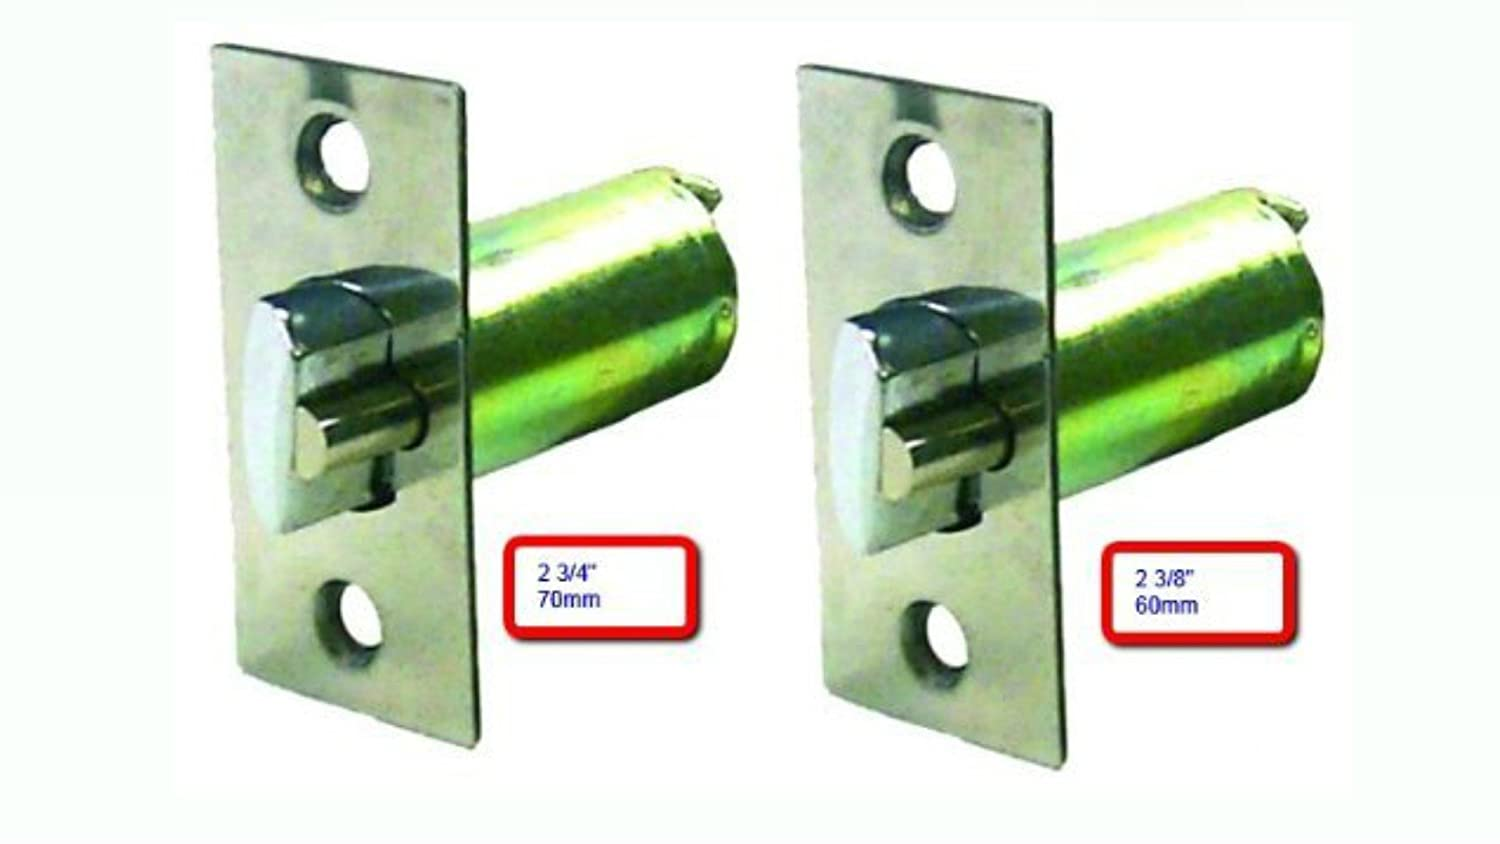 DeadLatch Replacement For Knob & Lever Door Lock (2 3/4